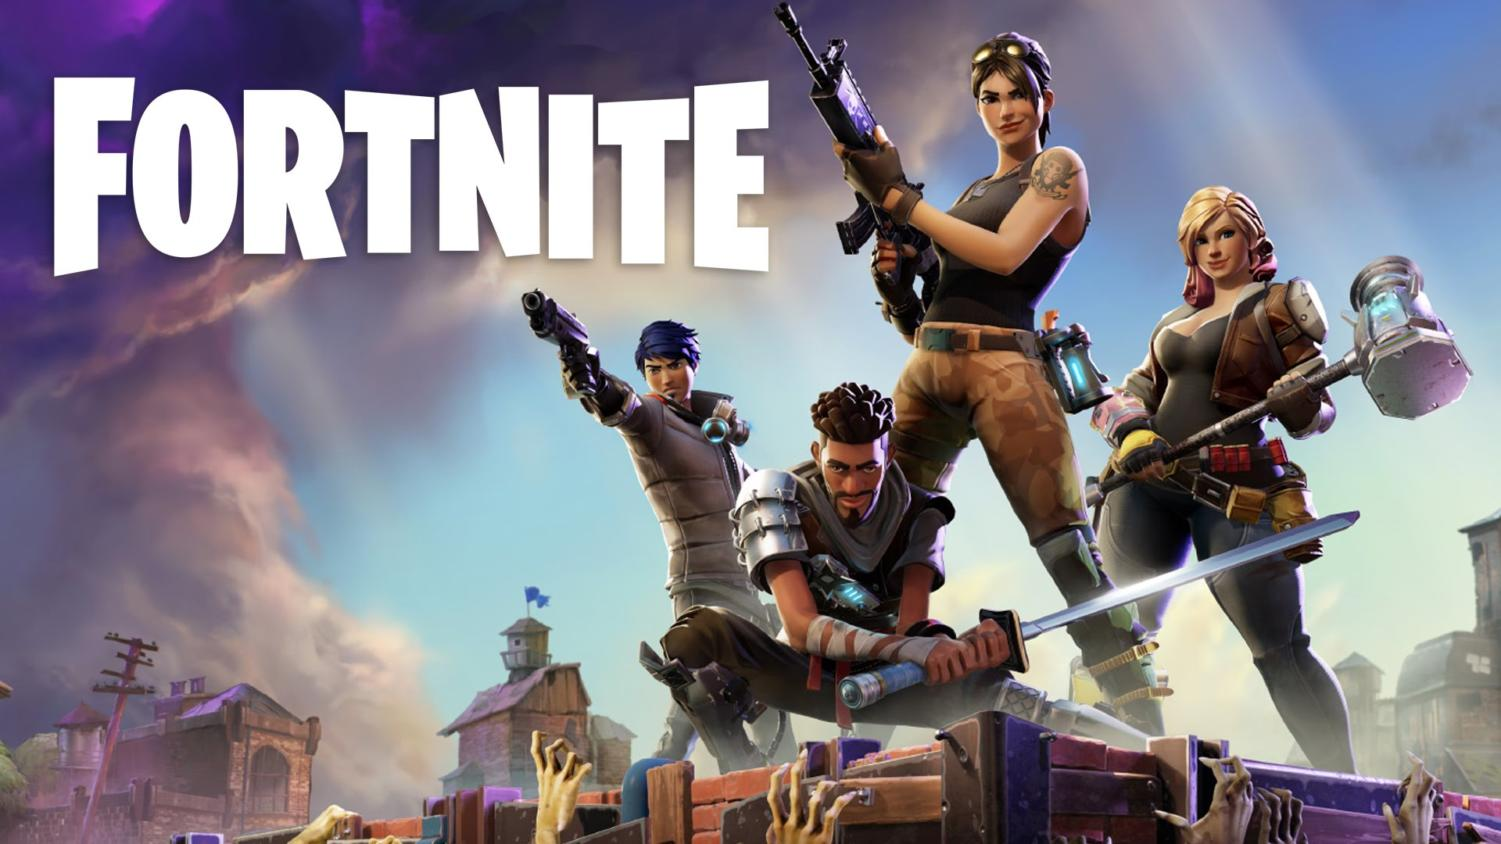 Fortnite is the latest game to capture the imagination of students across the globe.